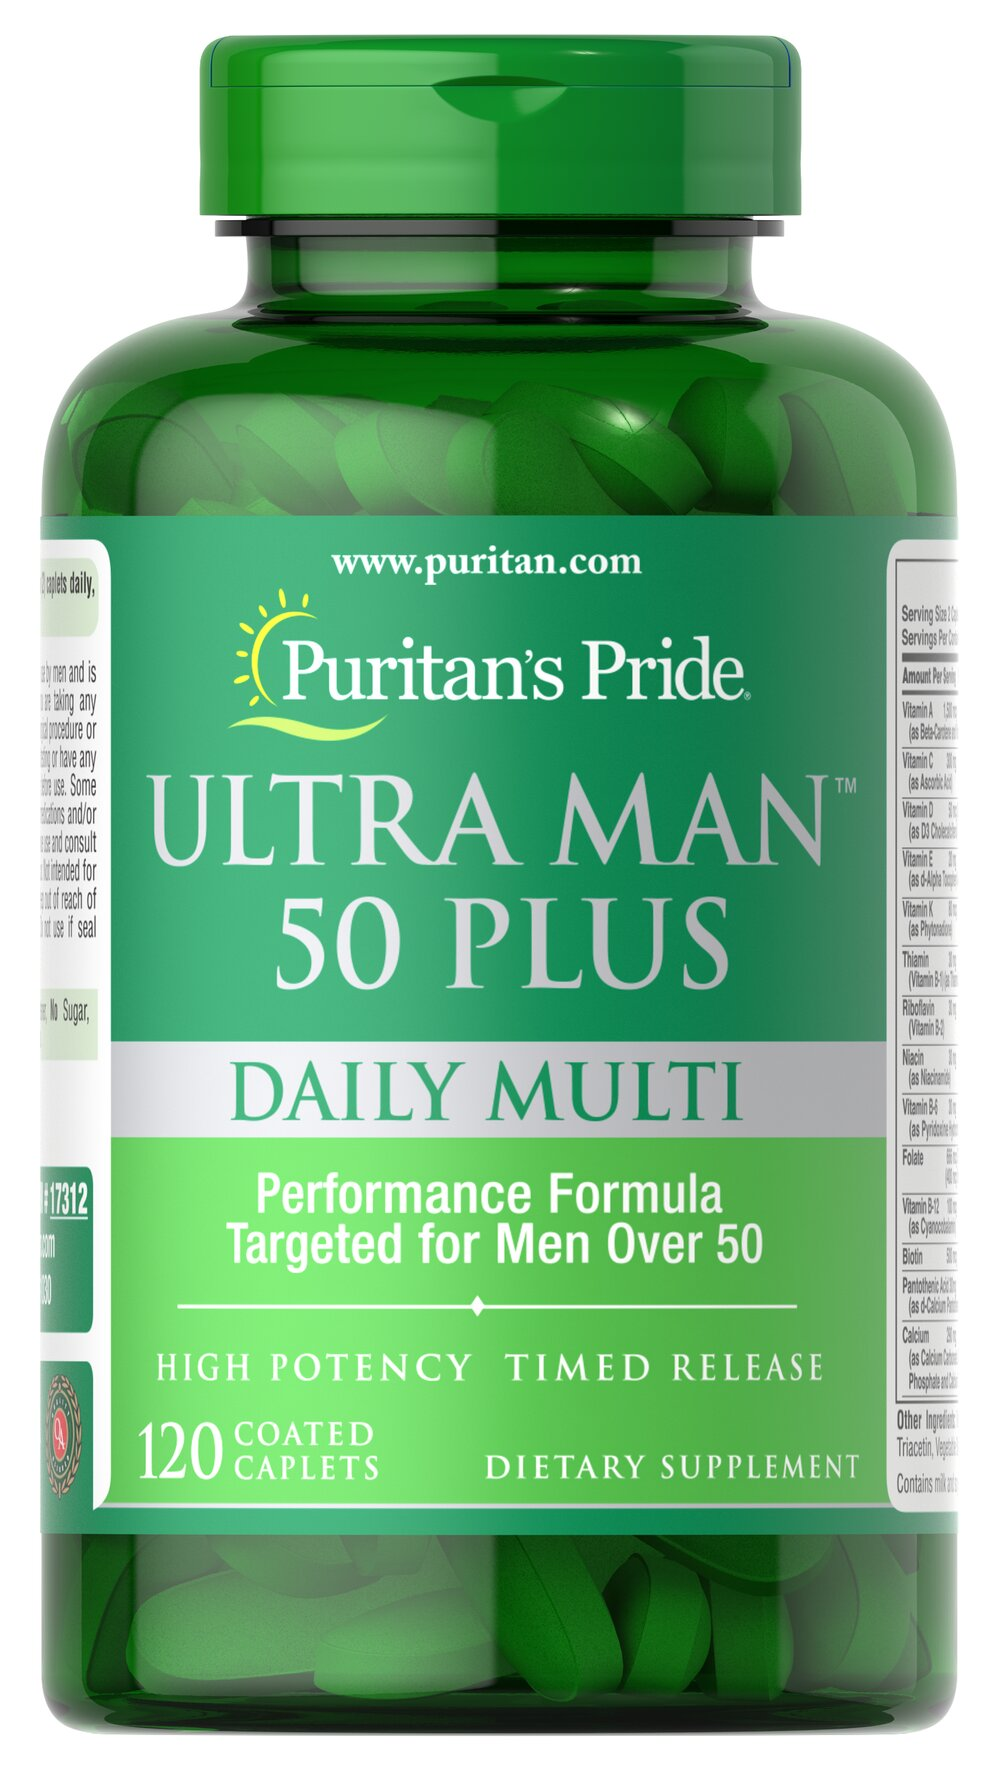 Ultra Vita Man™ 50 Plus • High performance multi with over 50 important nutrients for men's health**<br />• Created especially for men over 50<br />• Unlike other multis, Ultra Vita Man 50 Plus is enhanced with vital nutrients not commonly found in the diet.<br />• Just two coated caplets a day<br />• Includes Saw Palmetto, Pygeum and Lycopene for healthy prostate function**<br />• Helps improve memory, especially occasional mild memory problems associated with agin